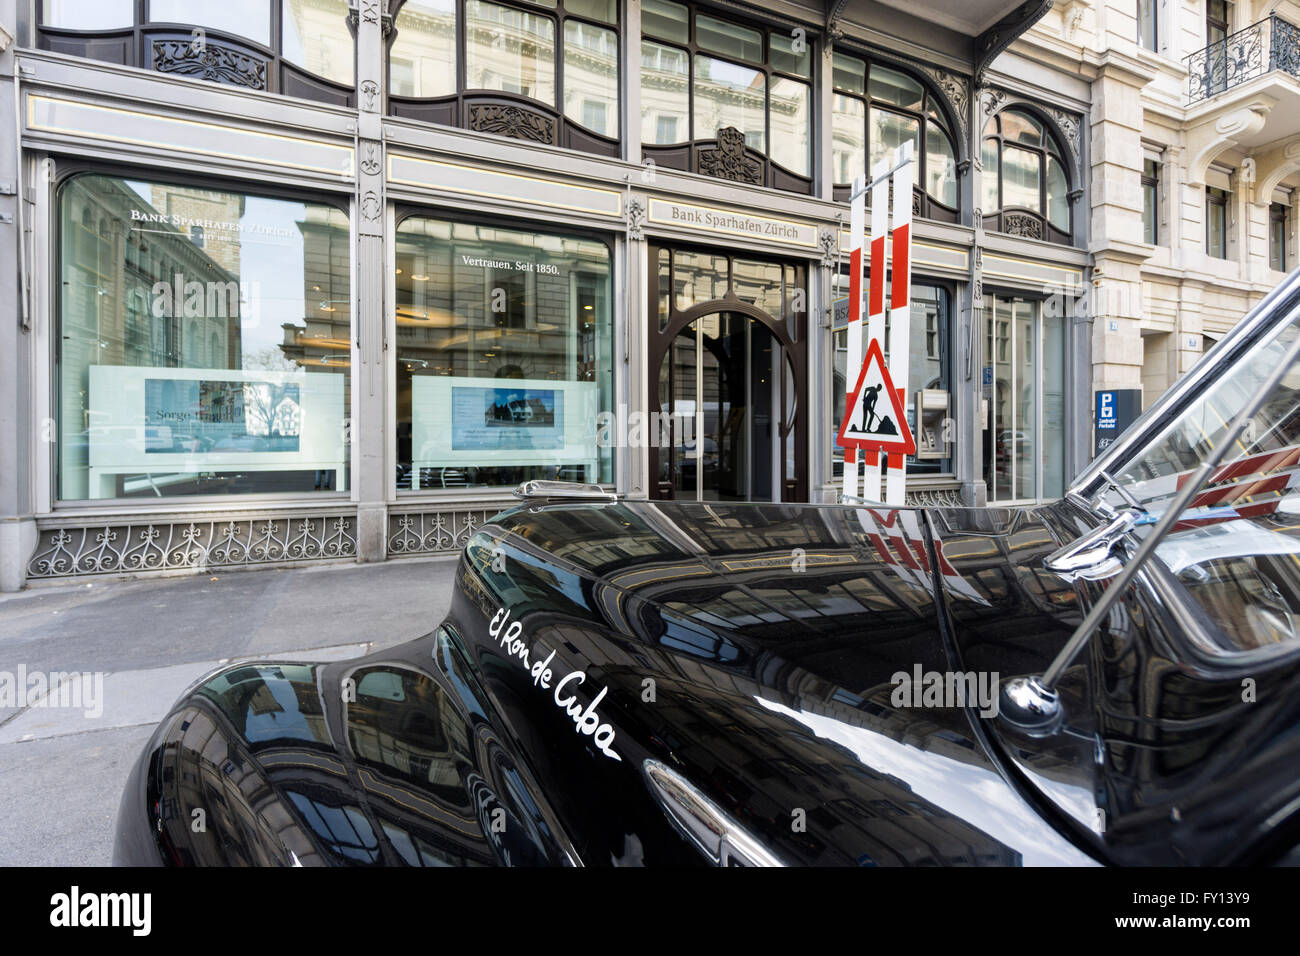 Bank Sparhafen Zurich, Oldtimer, Switzerland Stock Photo